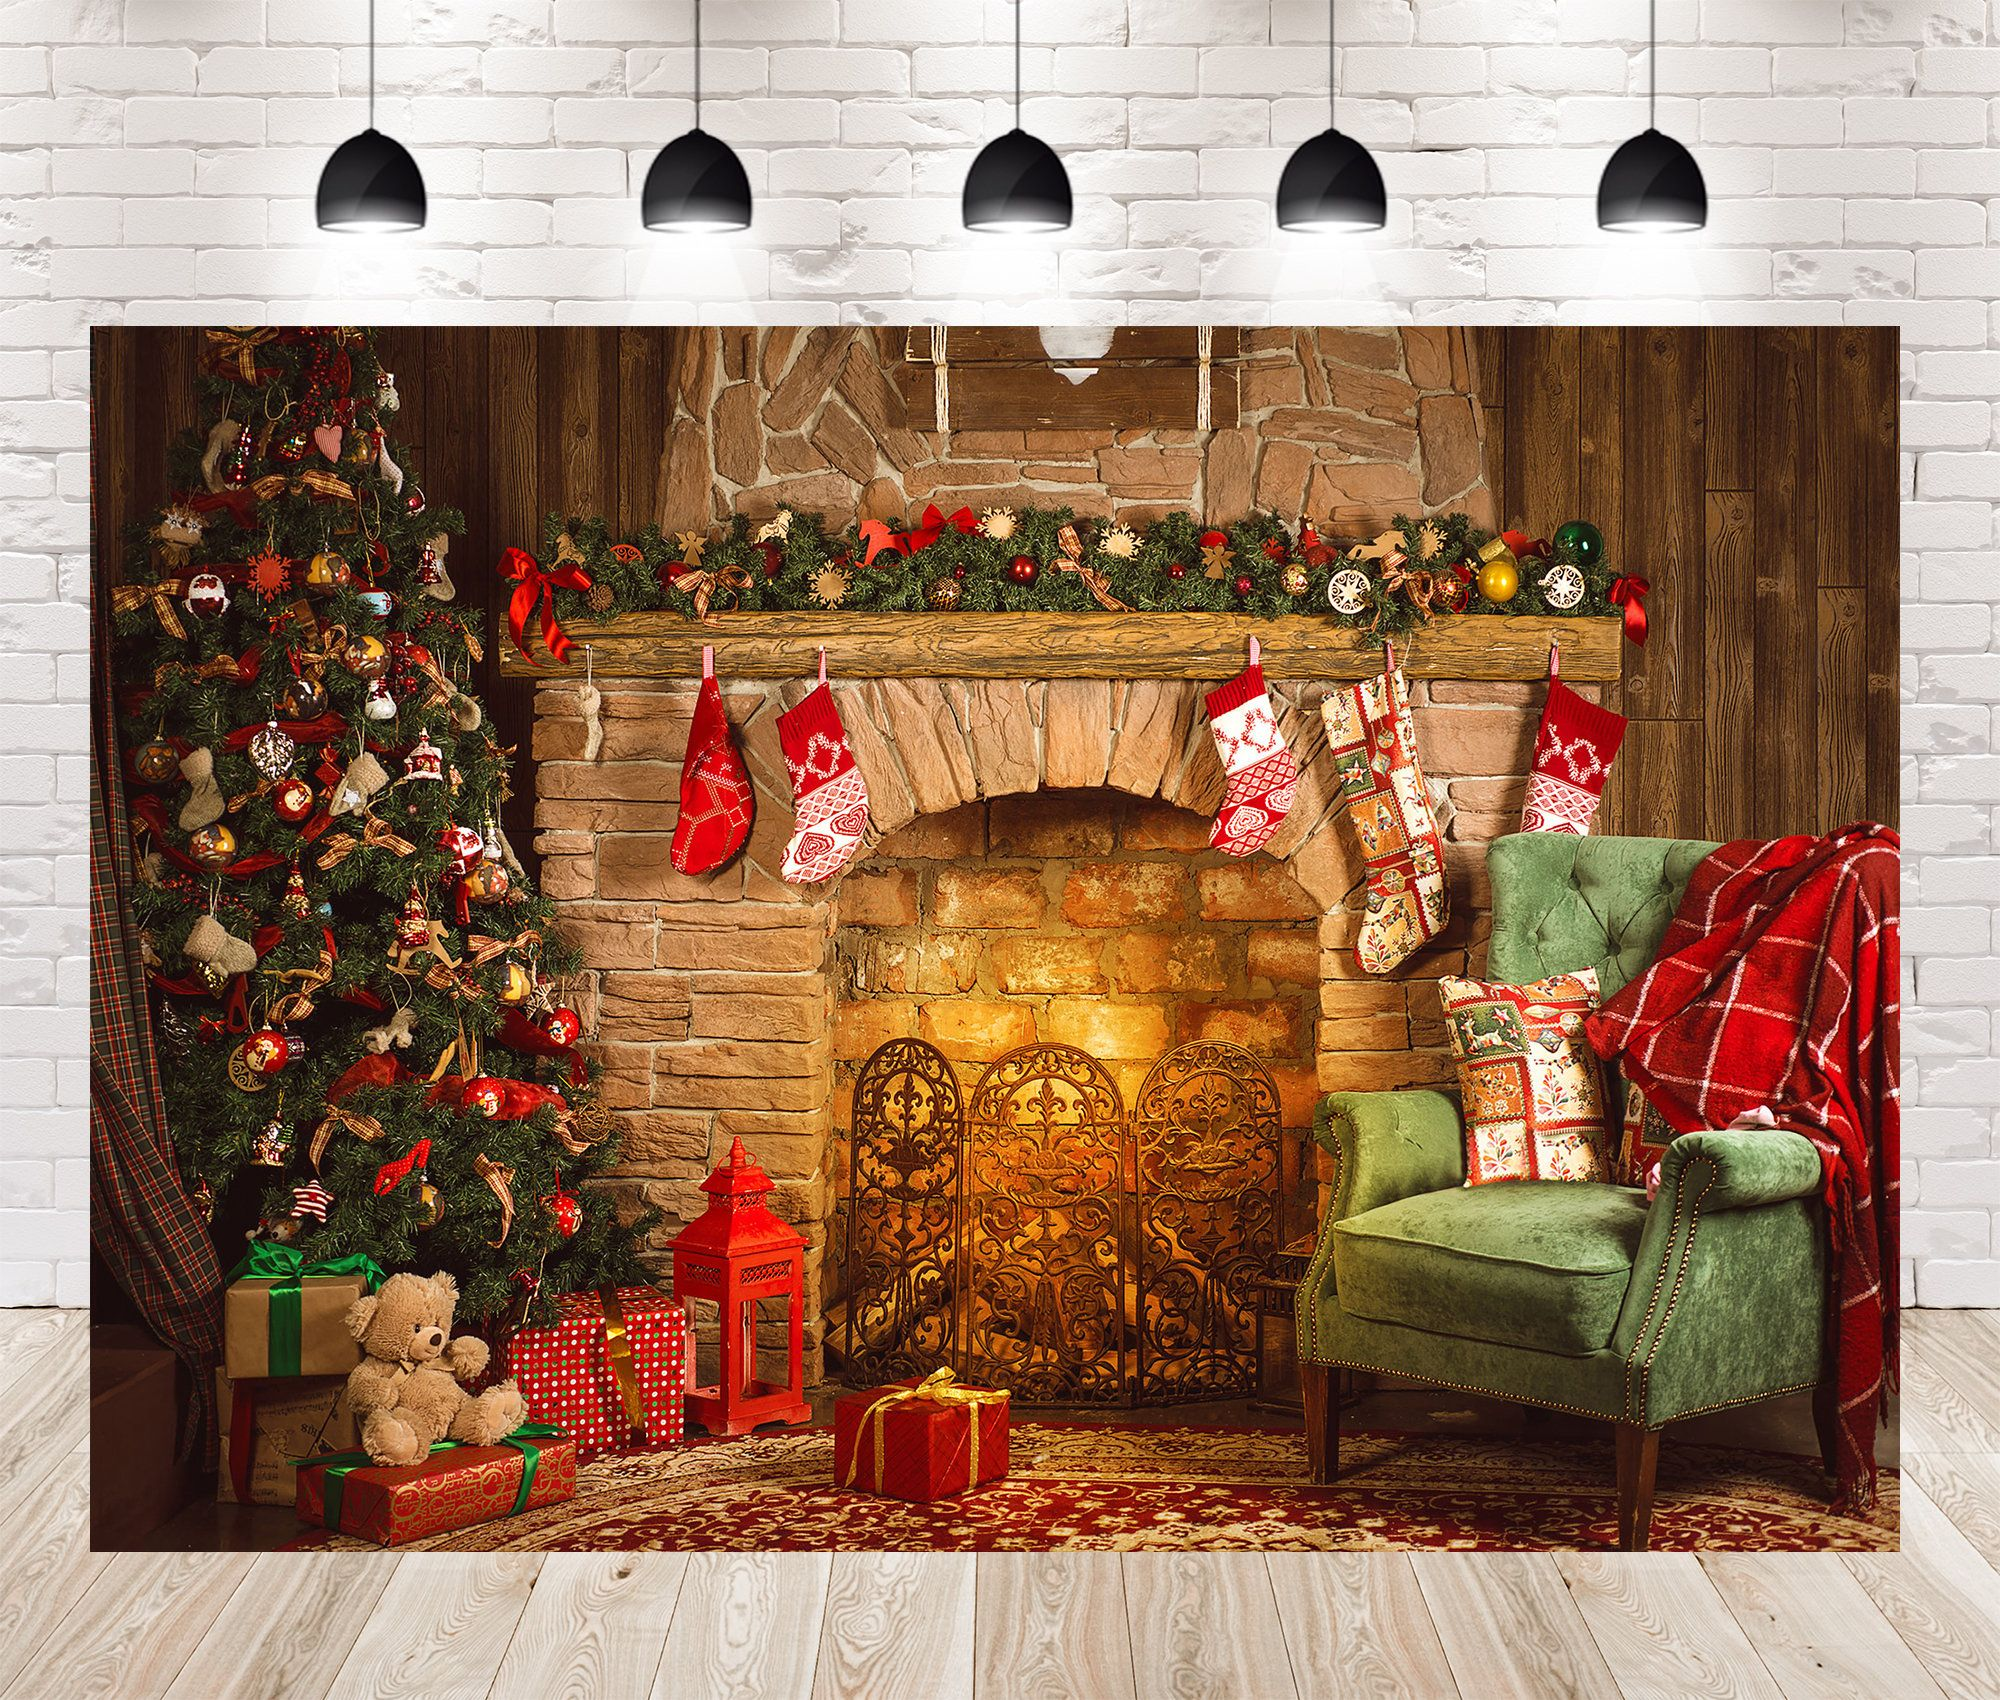 Christmas Tree Fireplace Socks Gift Box Photo Backdrops Booth Etsy In 2020 Christmas Tree And Fireplace Farmhouse Christmas Decor Christmas Fireplace